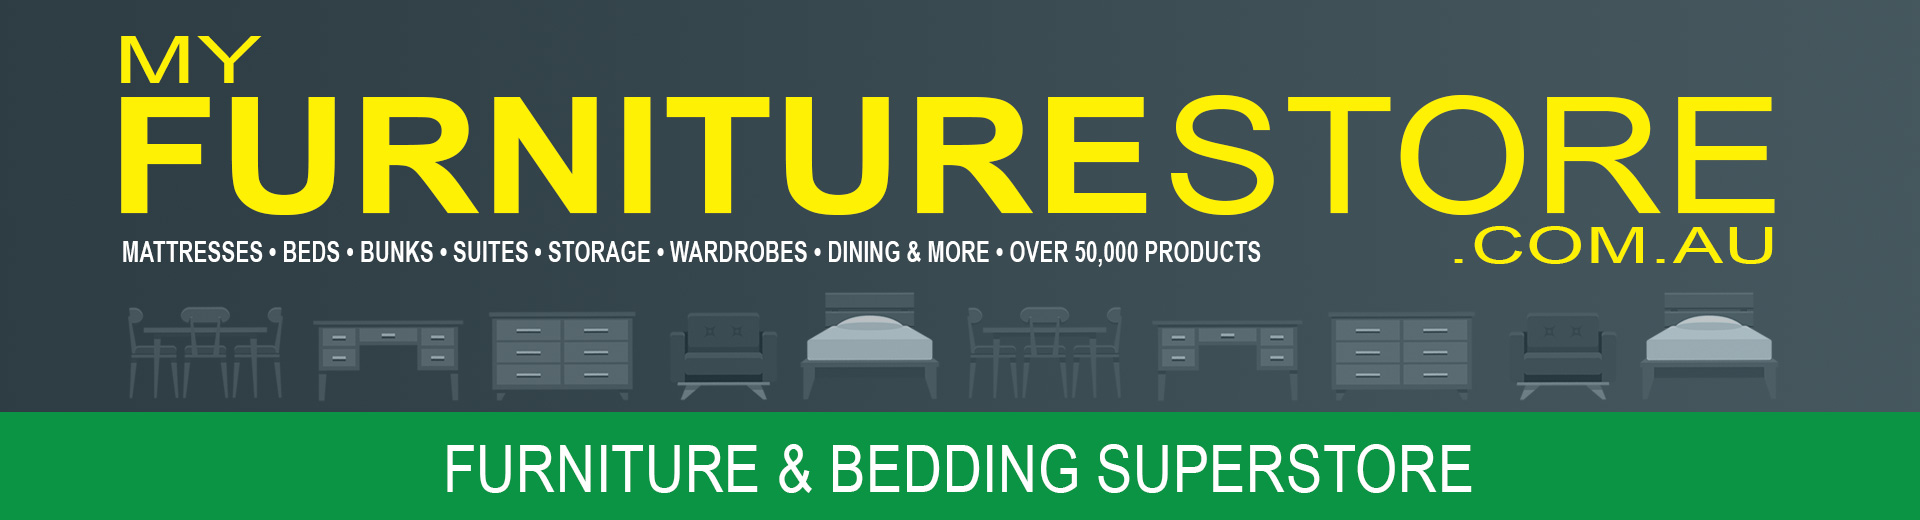 Australia's Best Online Furniture & Bedroom Furniture Store